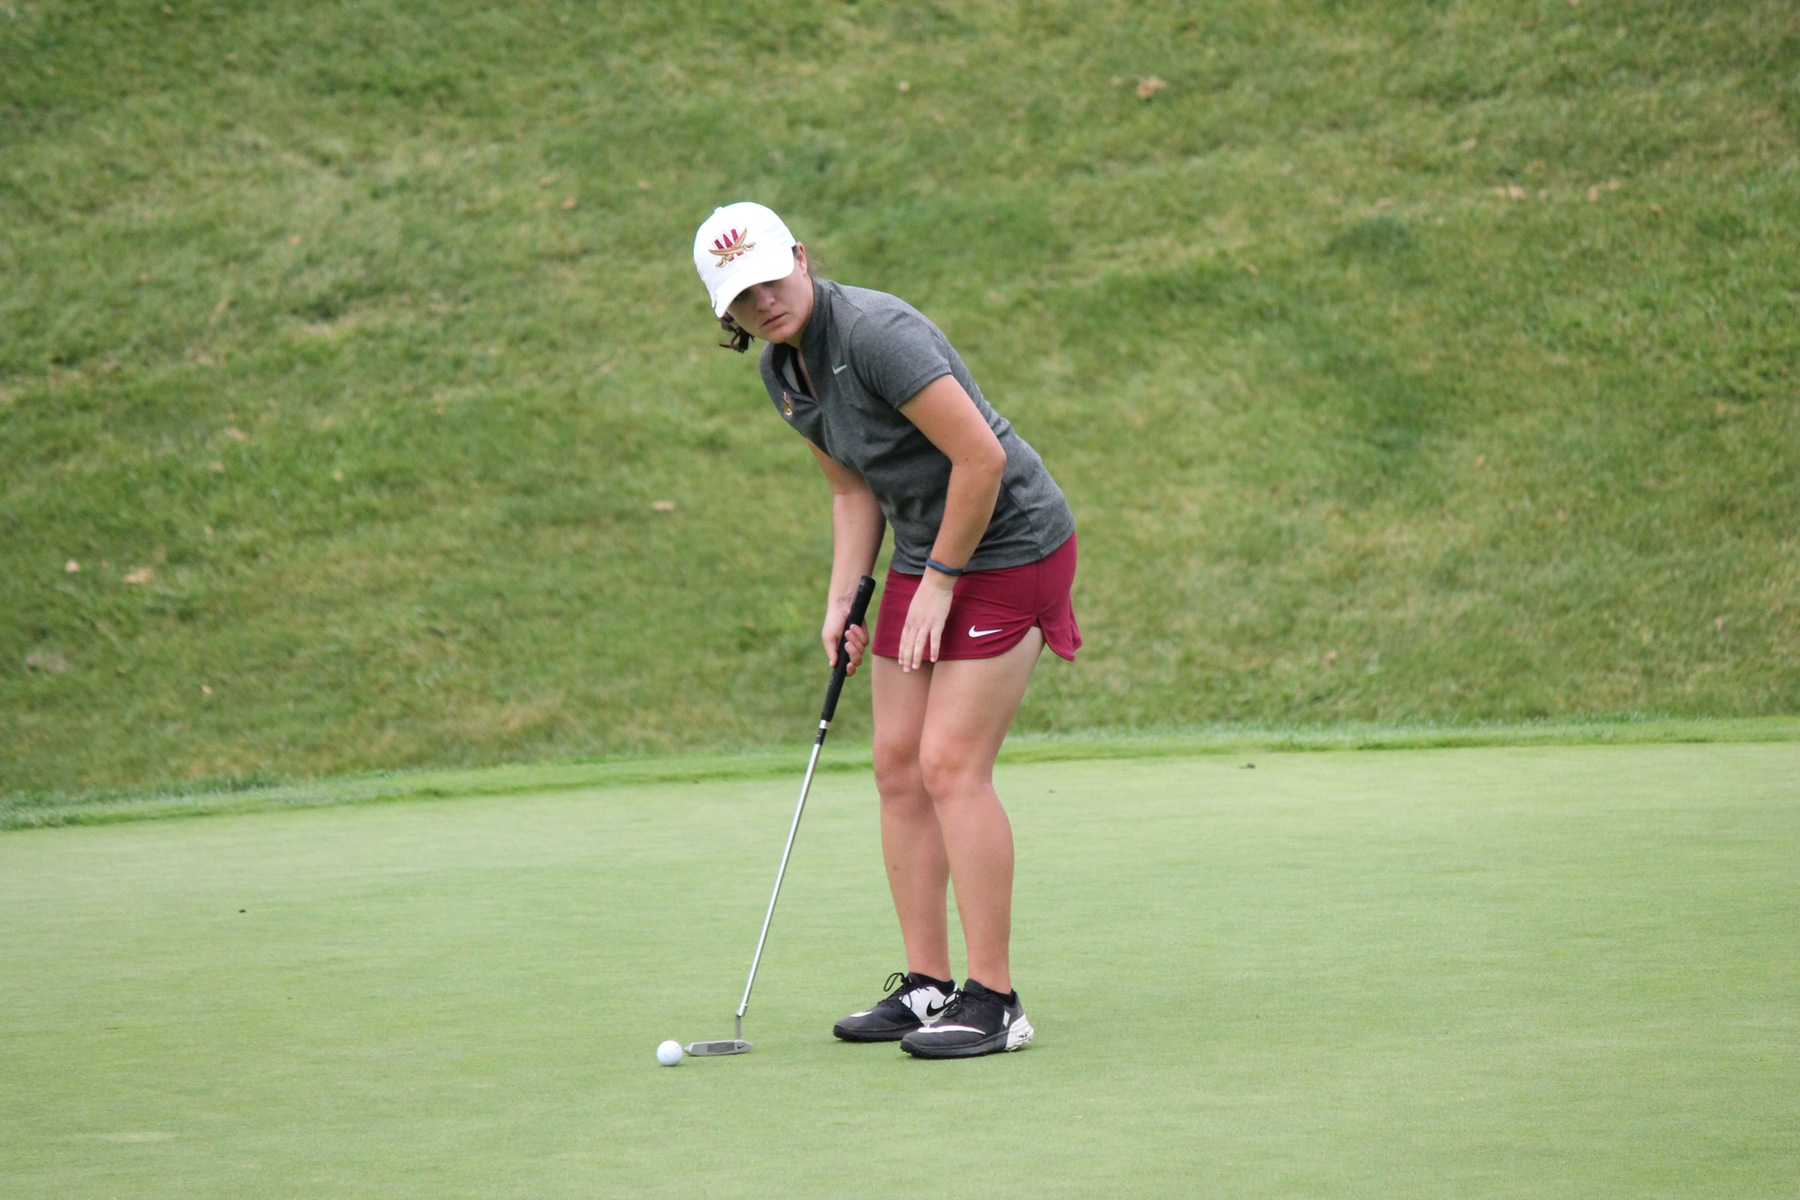 Walsh Walsh Womens College Golf - Walsh News, Scores, and ...